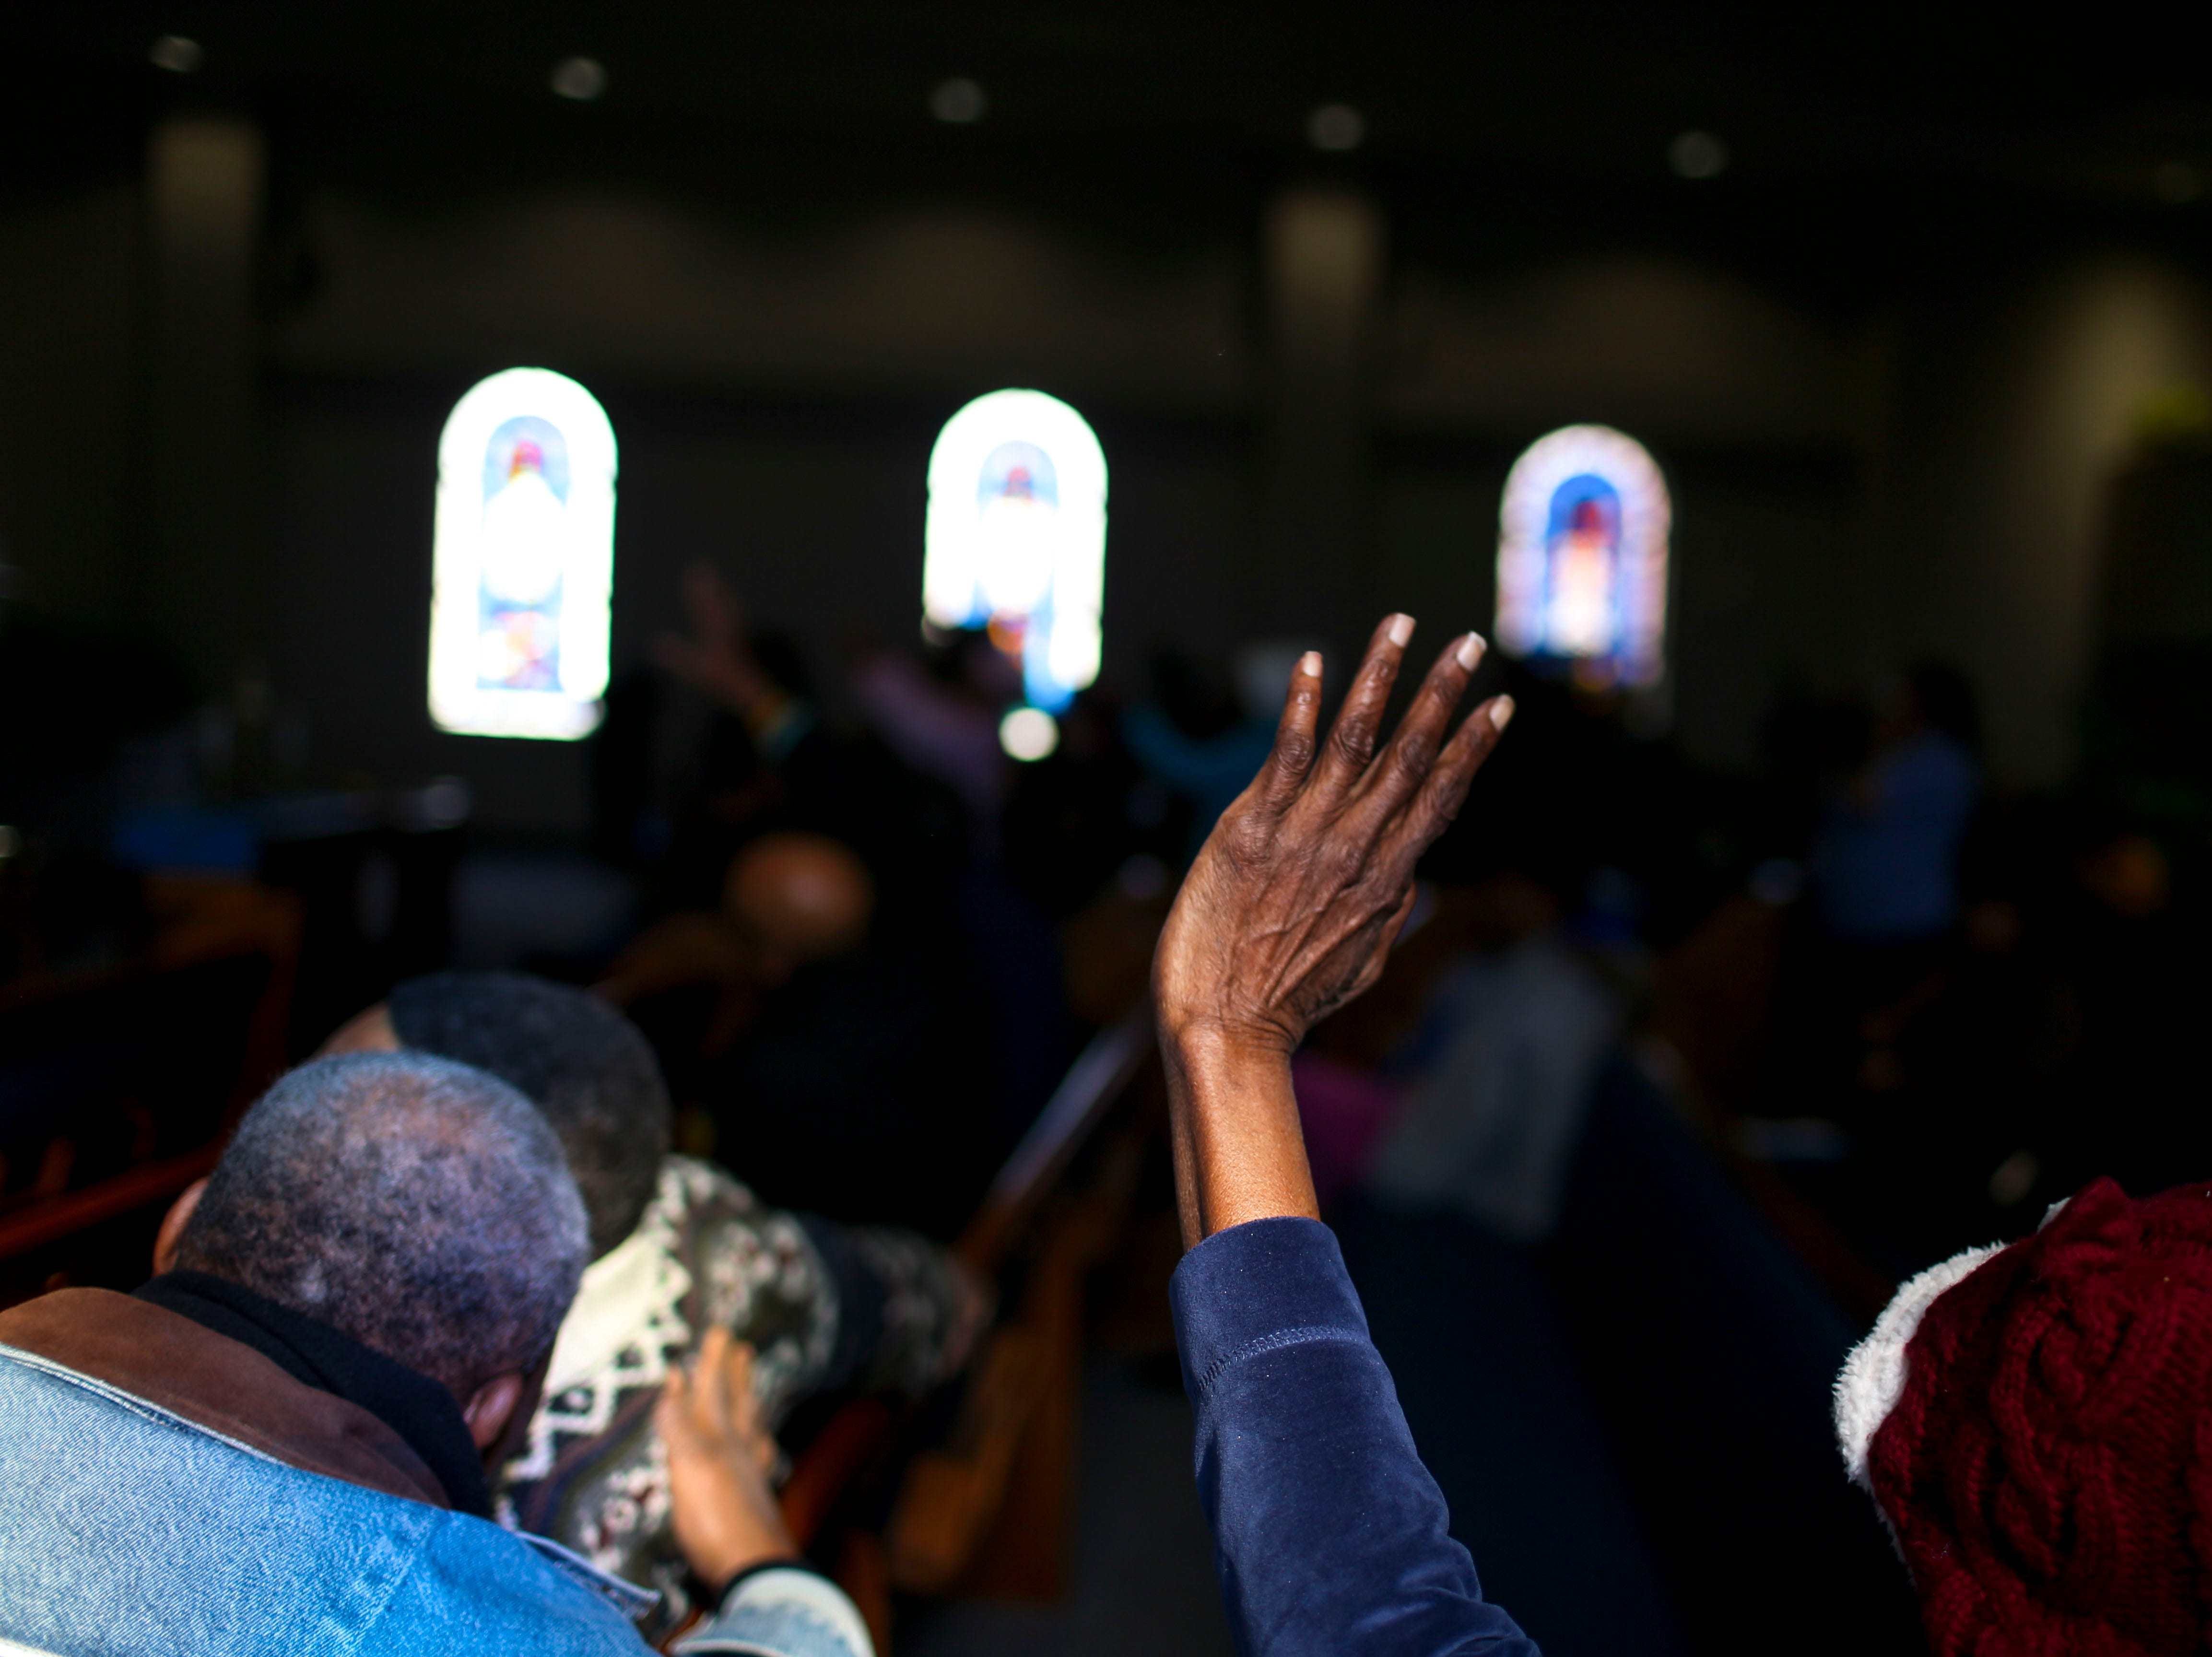 Ophelia Bond raises her hand in praise while Rev. Cleavon Meabon sings during a service held for Martin Luther King Jr. Day at Mt. Zion Baptist Church in Jackson, Tenn., on Monday, Jan. 21, 2019.